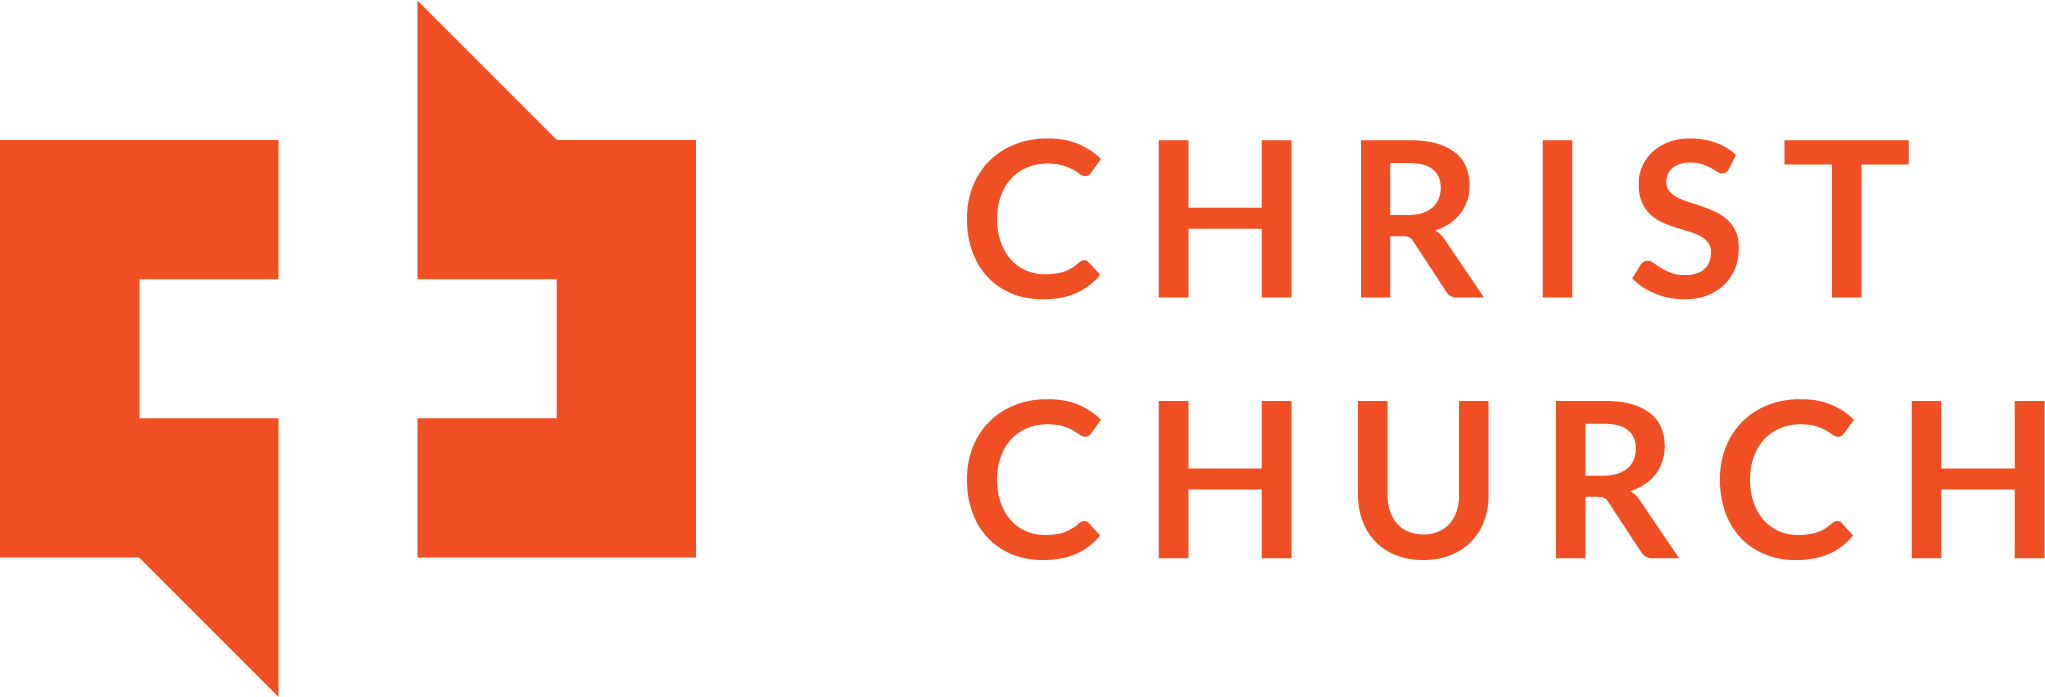 Christ Church logo_Orange